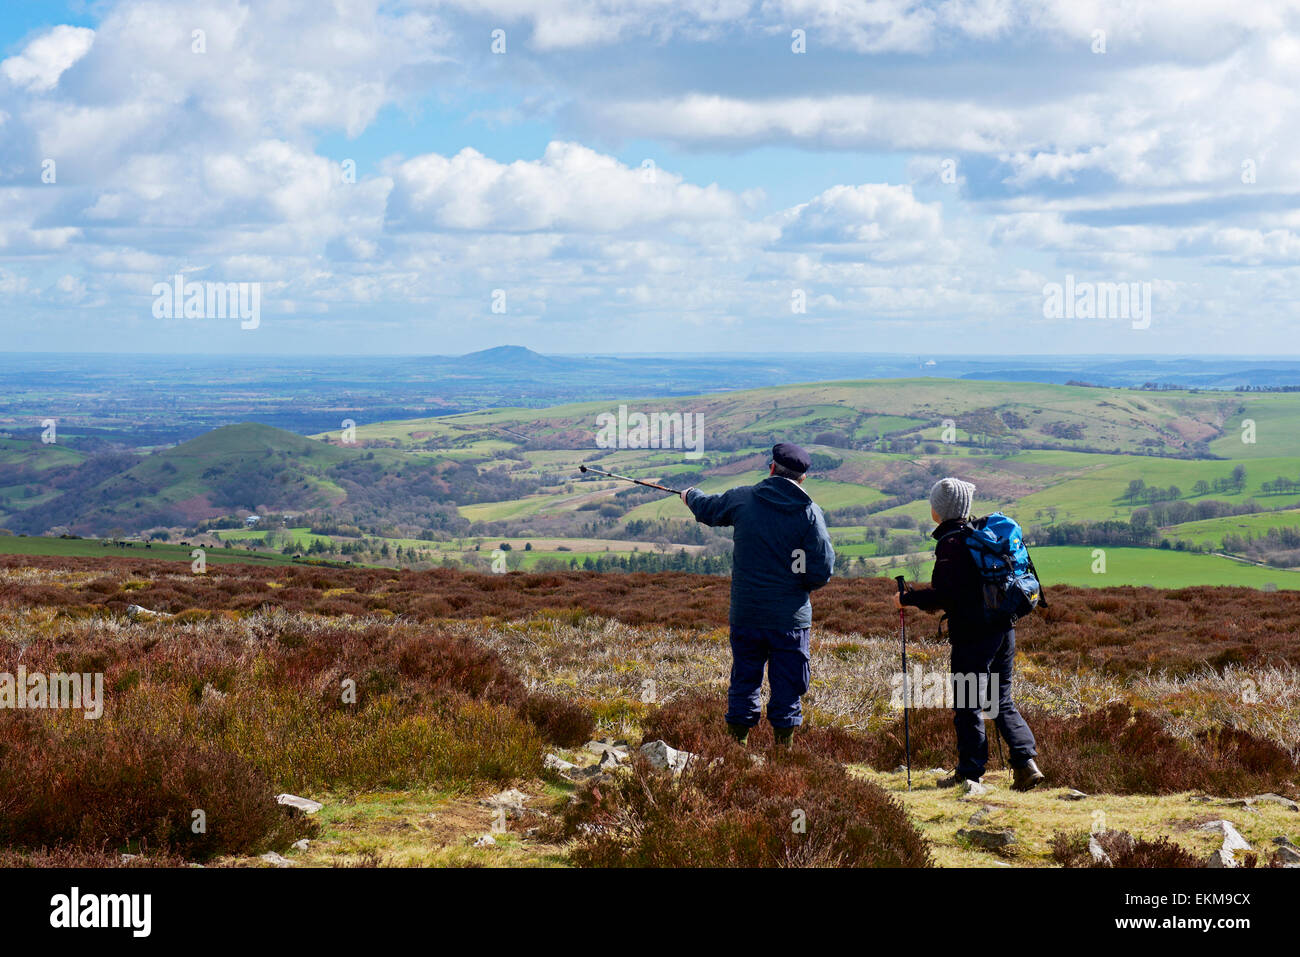 Two walkers in the Shropshire hills, England UK - Stock Image